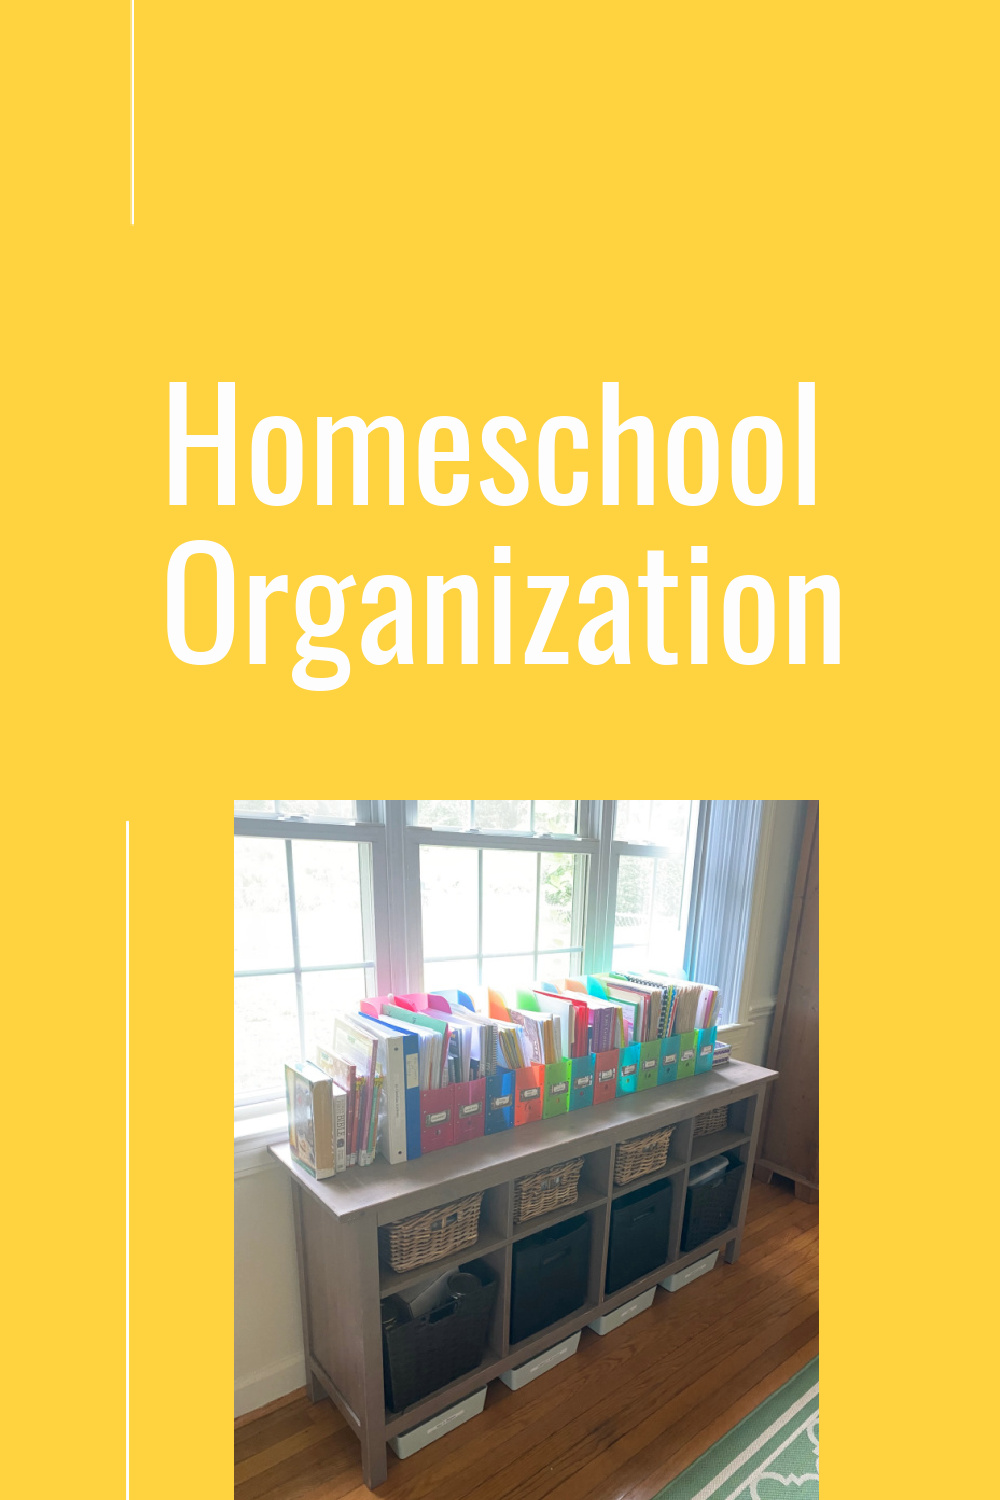 Homeschool organization tips.